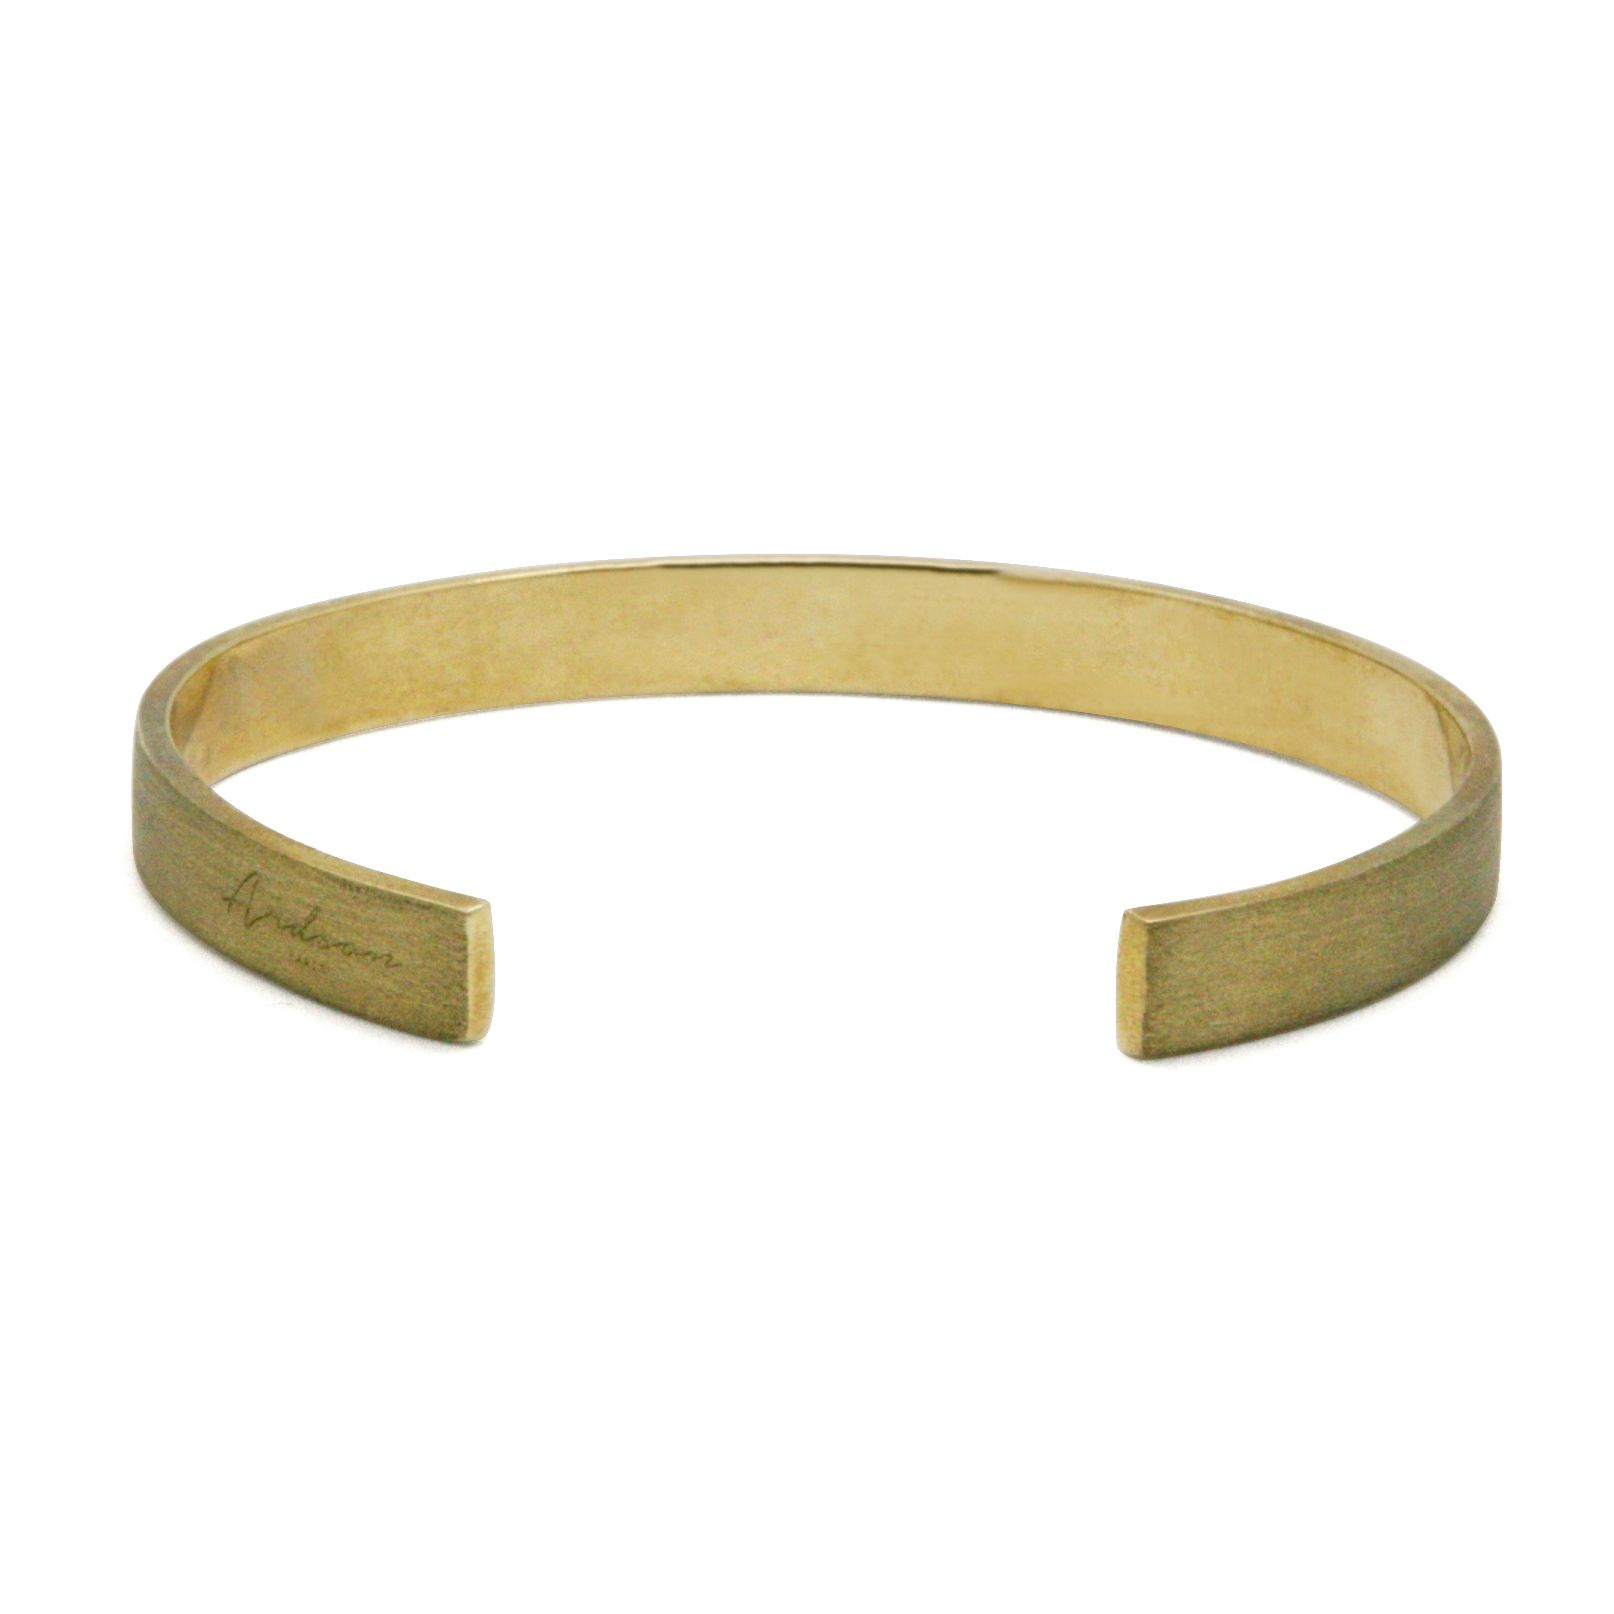 A unique cuff, inspired by the everyday life elements.Brushed BrassHandcrafted -> 3 day lead time is required before shipping your itemDelivery -> Worldwide through Air Mail (10 to 25 days) or DHL Express (2 to 4 days)Single-size (L x W x H) -> see pictureFor special sizing contact us here.We would love to tailora special cufffor your wrist.